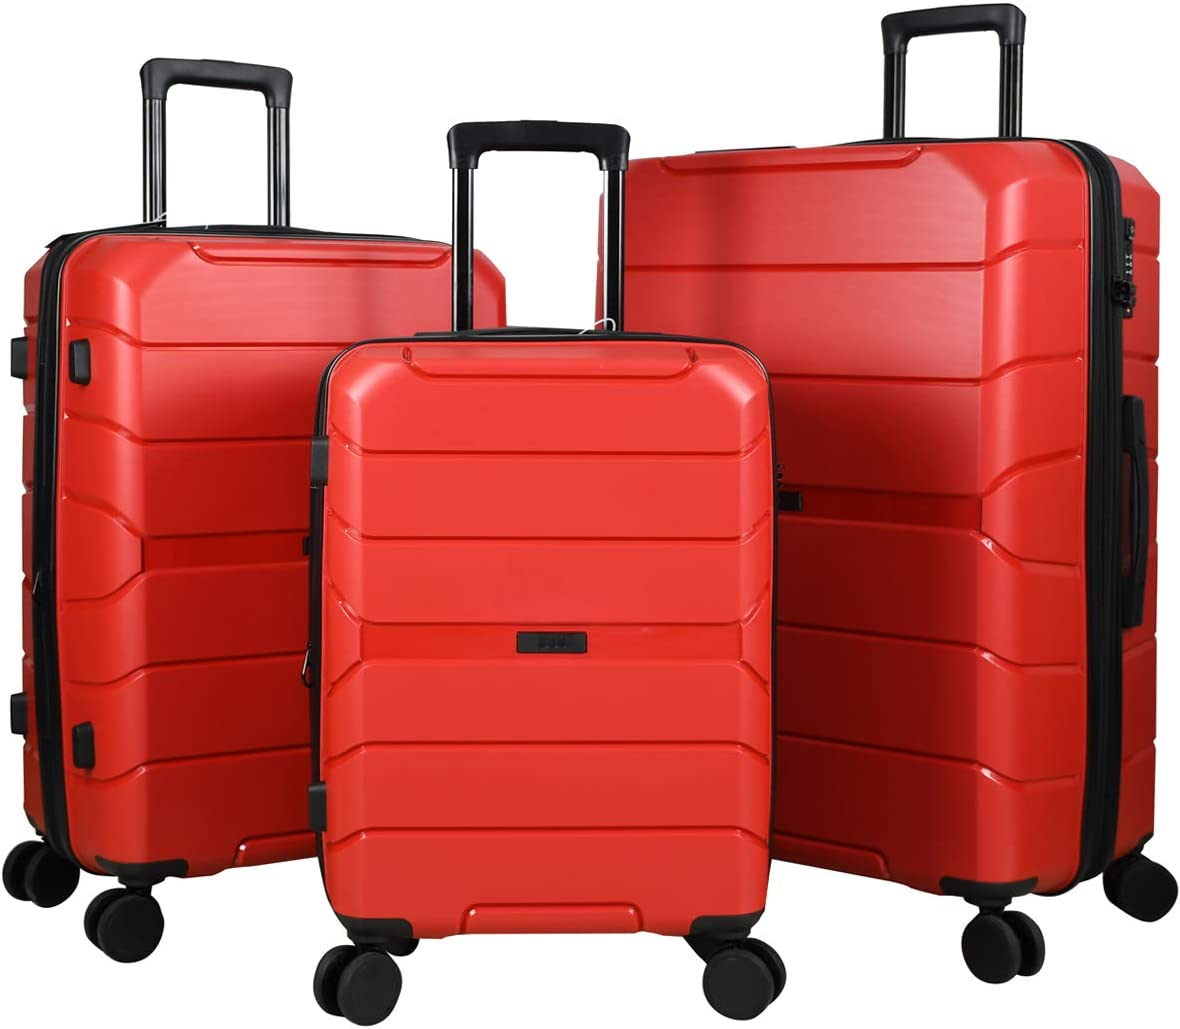 Expandable Luggage 3 Piece Set Suitcase Spinner Scratch Resist PP Hardside